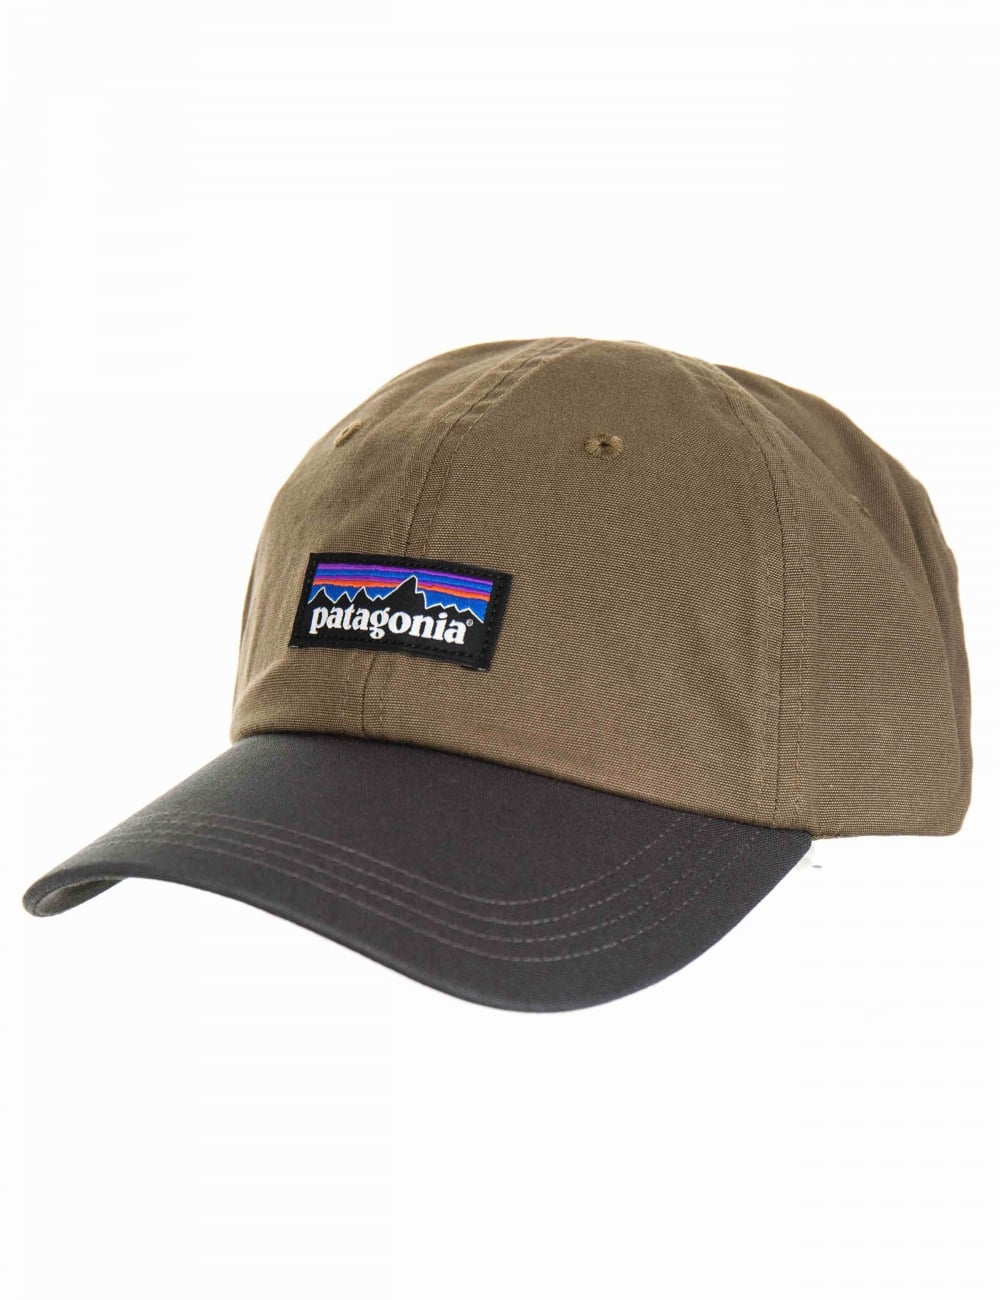 Patagonia P-6 Logo Trad Cap - Dark Ash - Accessories from Fat Buddha ... 3c772621d74